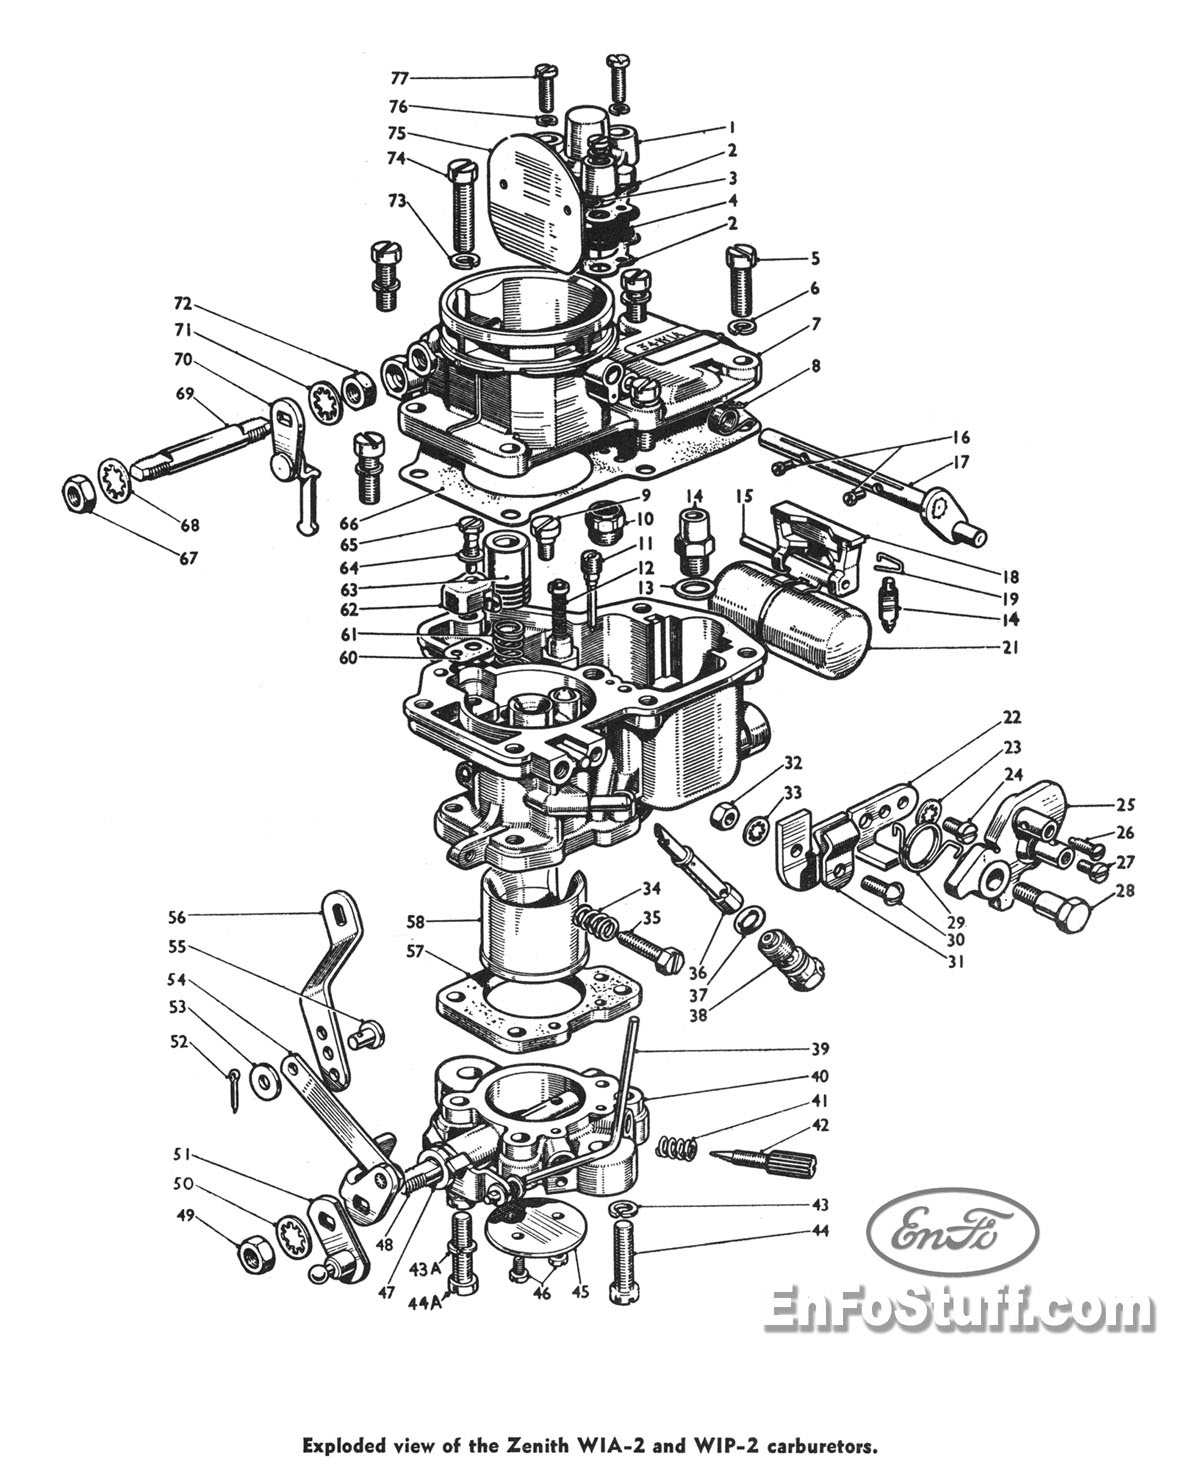 Carburetor Diagram Zenith Wia 2 And Wip Consul Mkii Zodiac